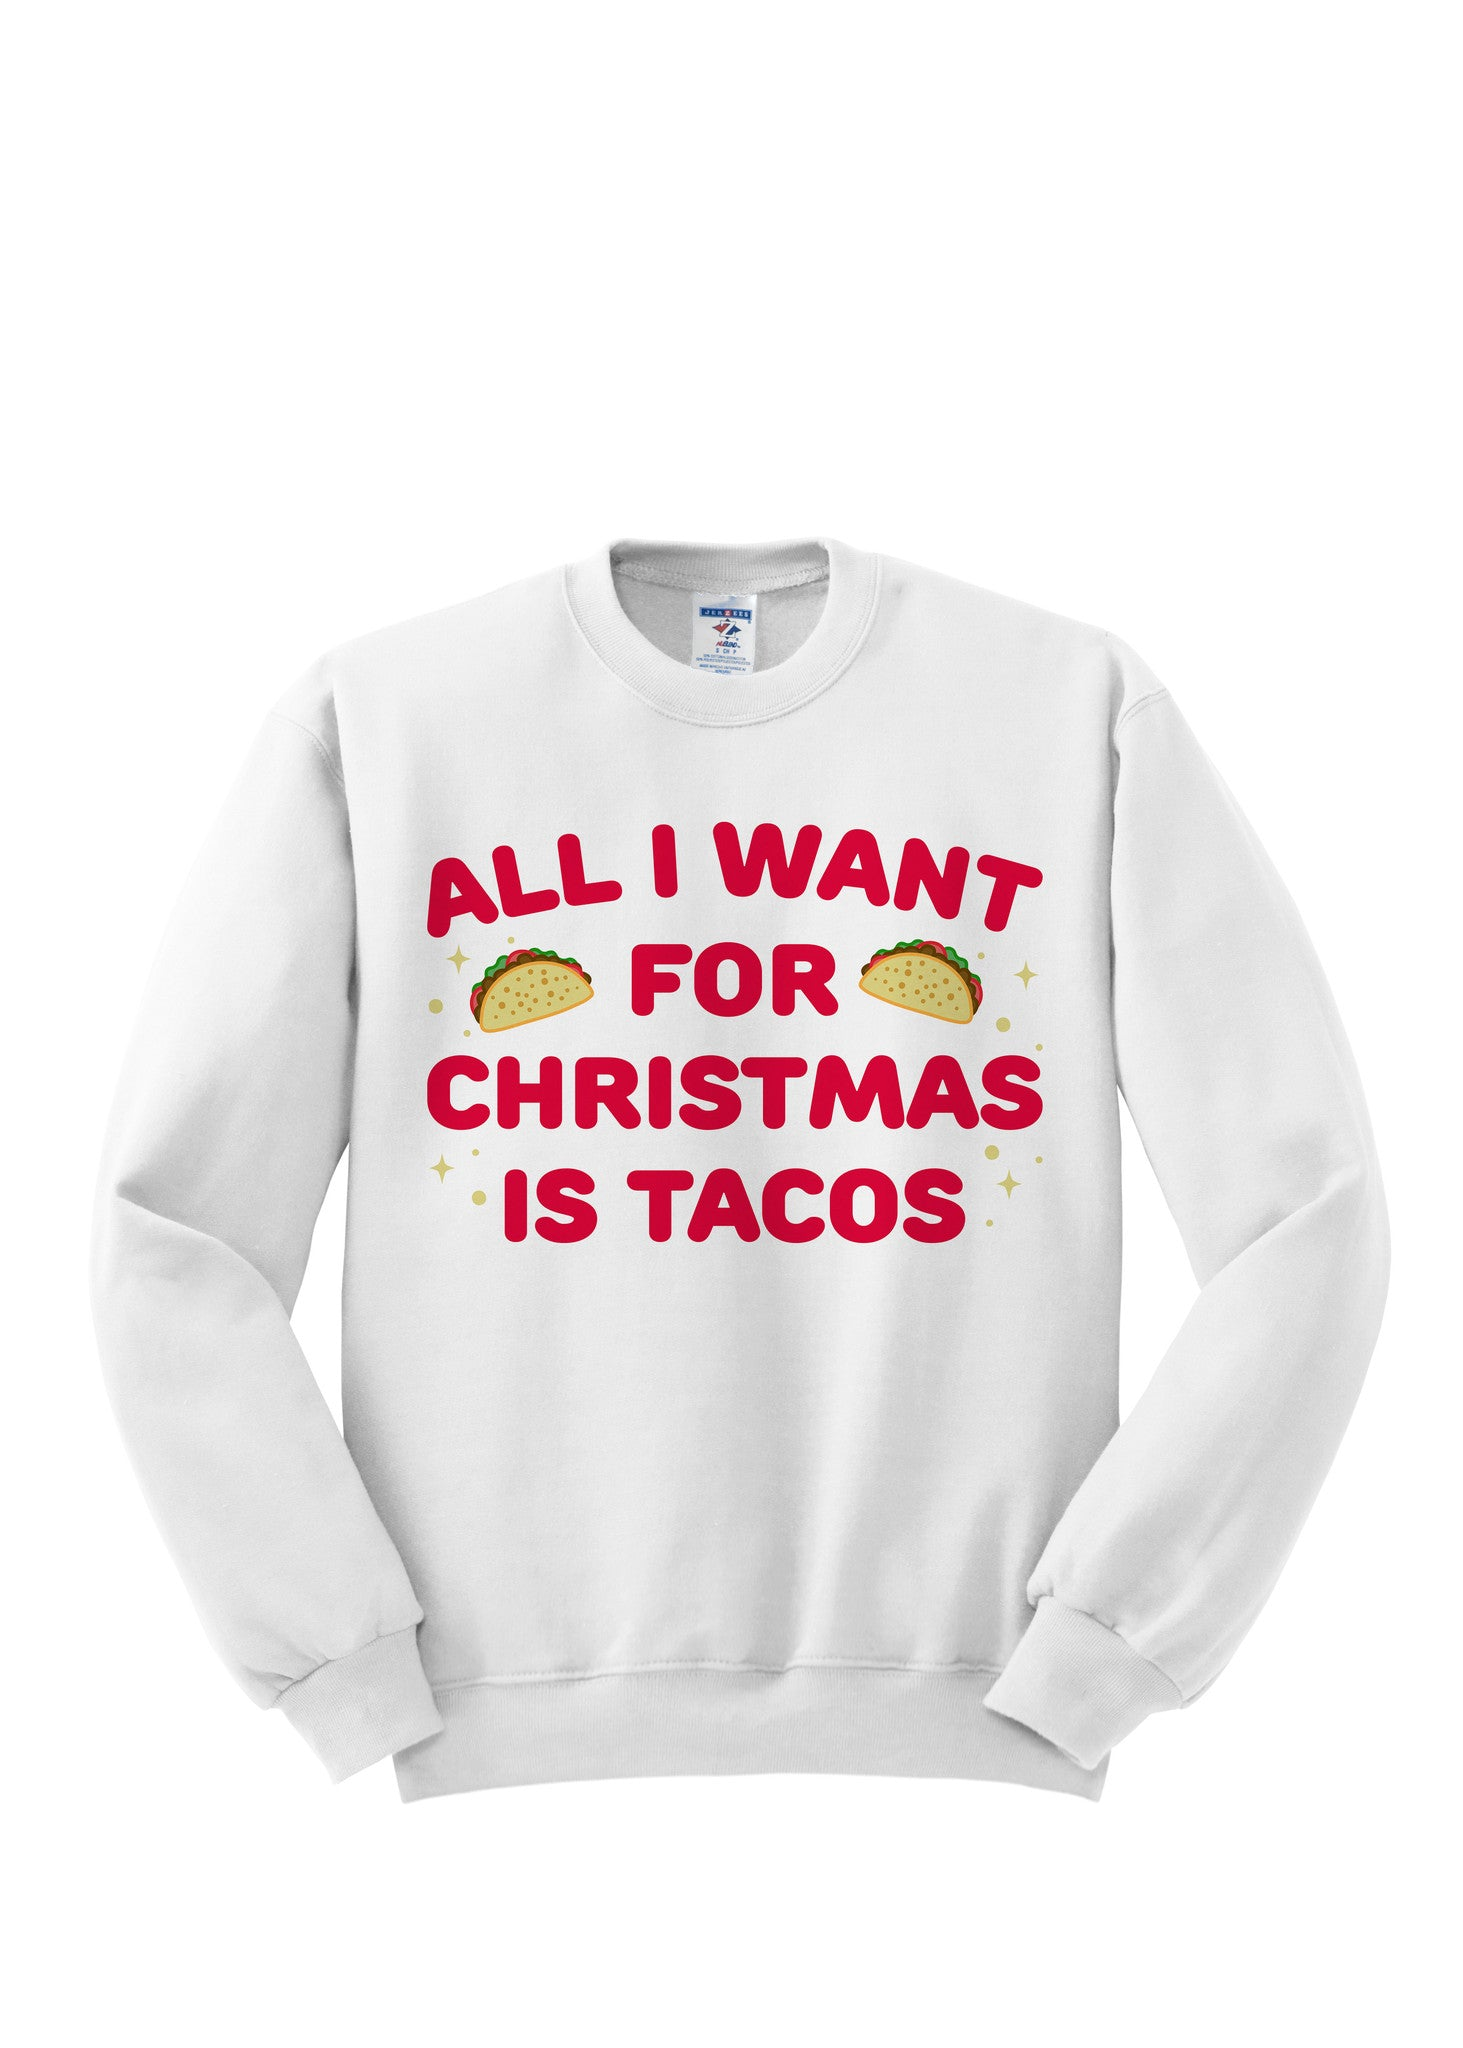 All I Want For Christmas is Tacos Crewneck | Socially Responsible Gift-Giving | Hanger.io